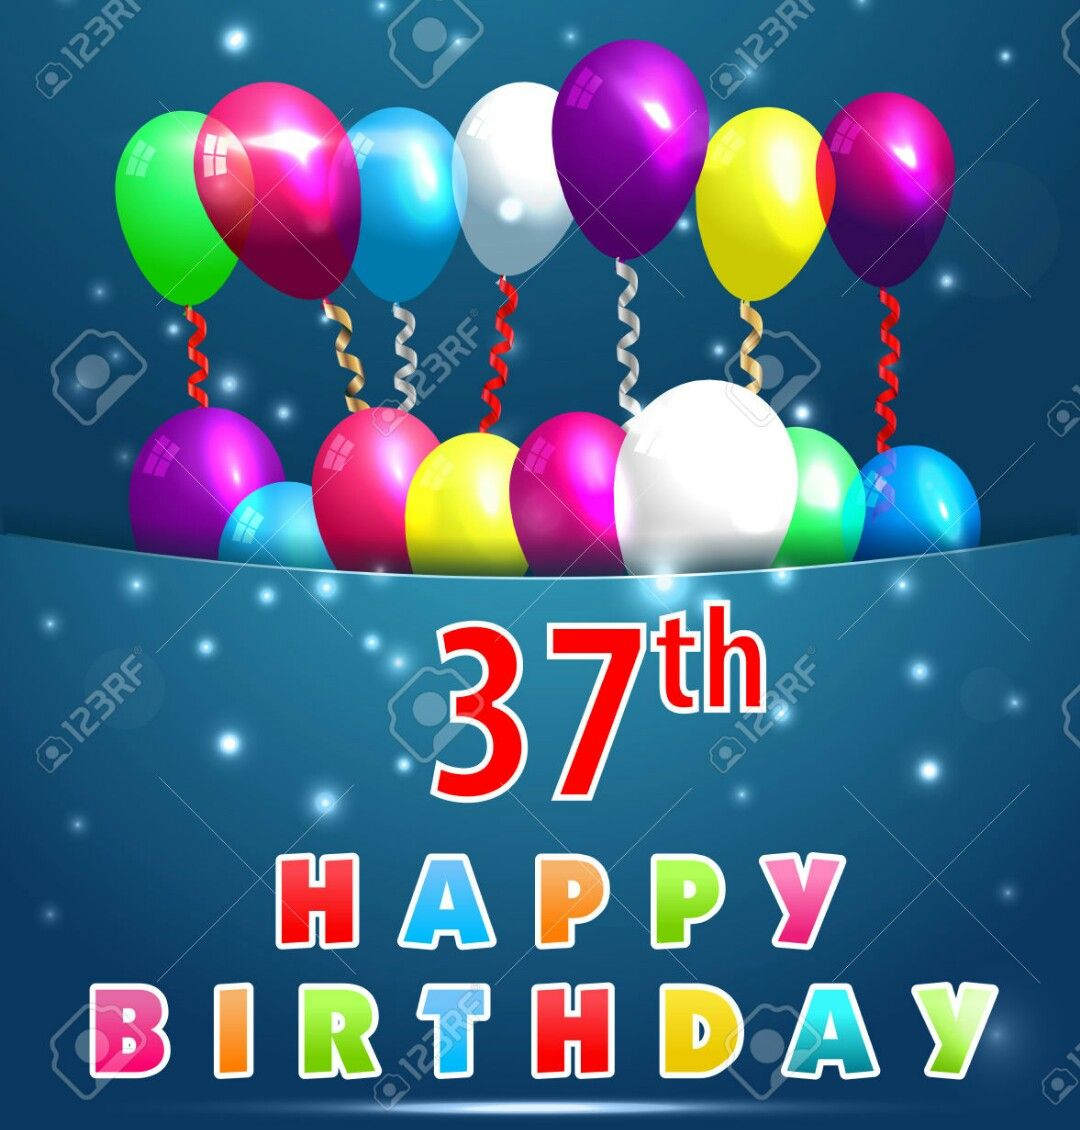 A A Happy 37th Birthday A A Birthday Milestones 30 35 40